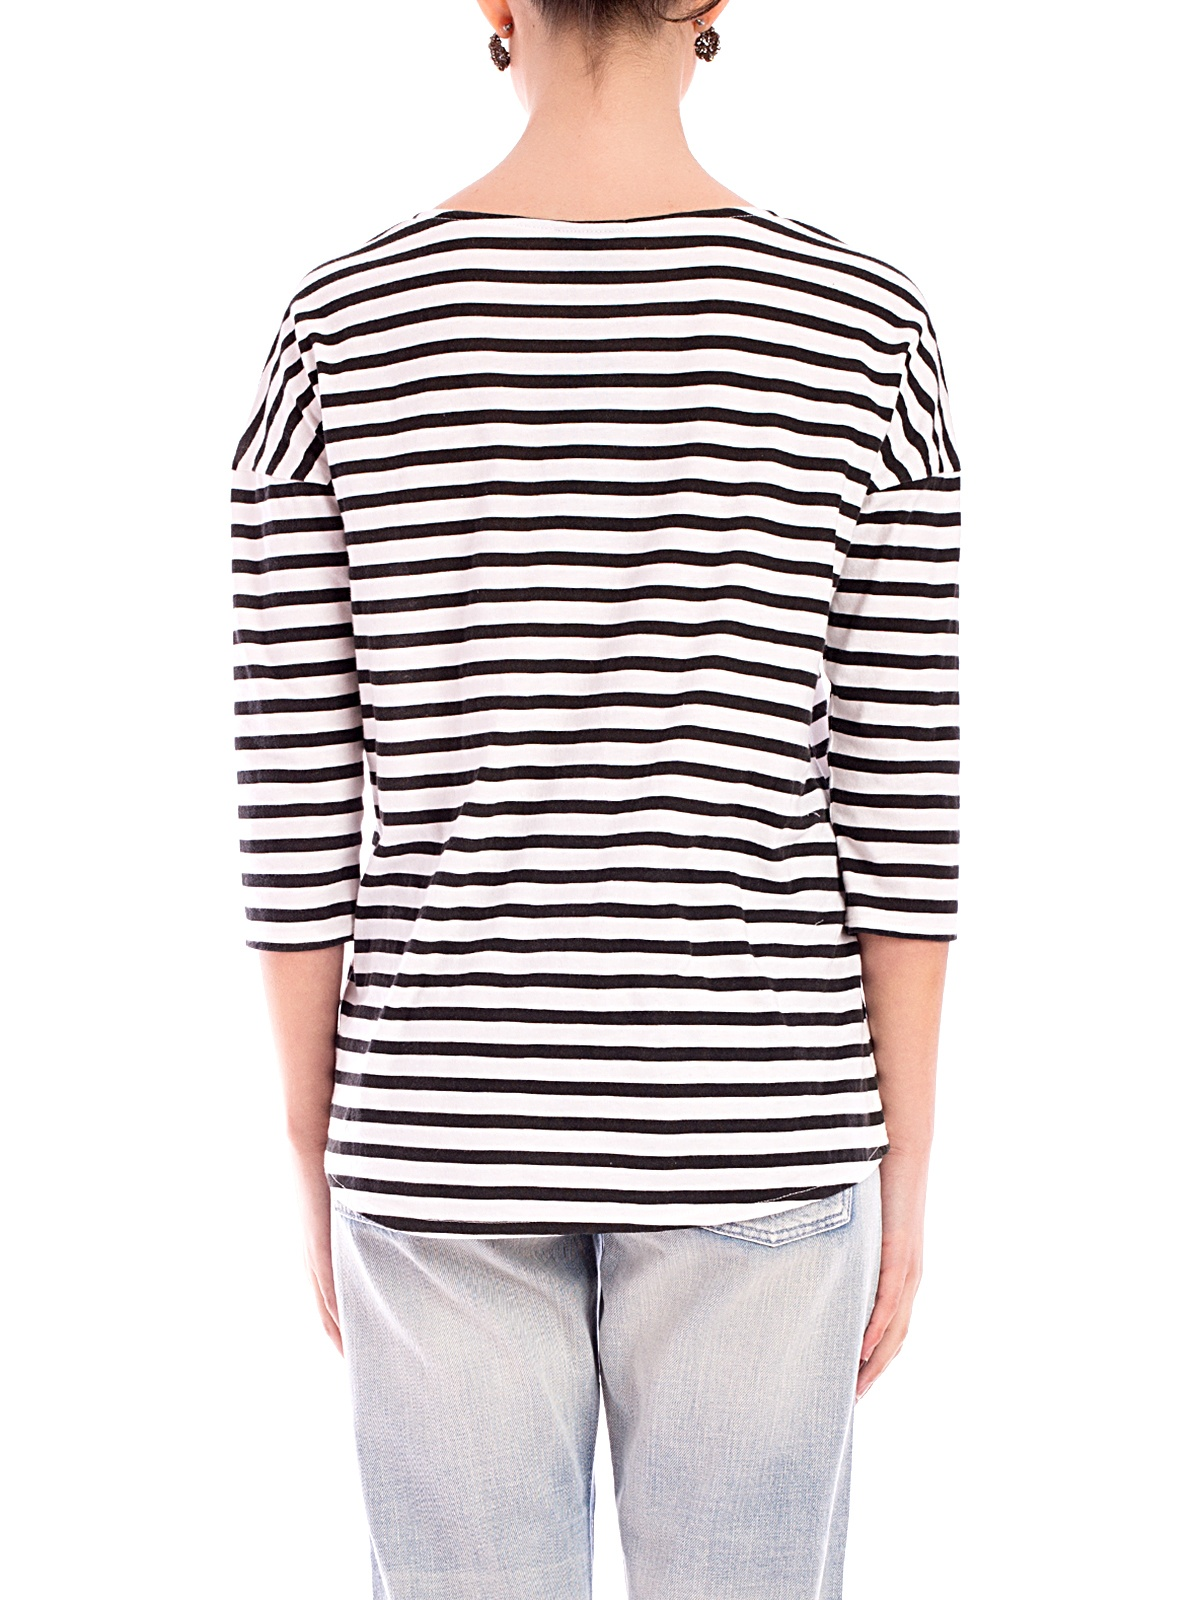 Dr Denim | Blair Tee Thin Stripe | GIRISSIMA.COM